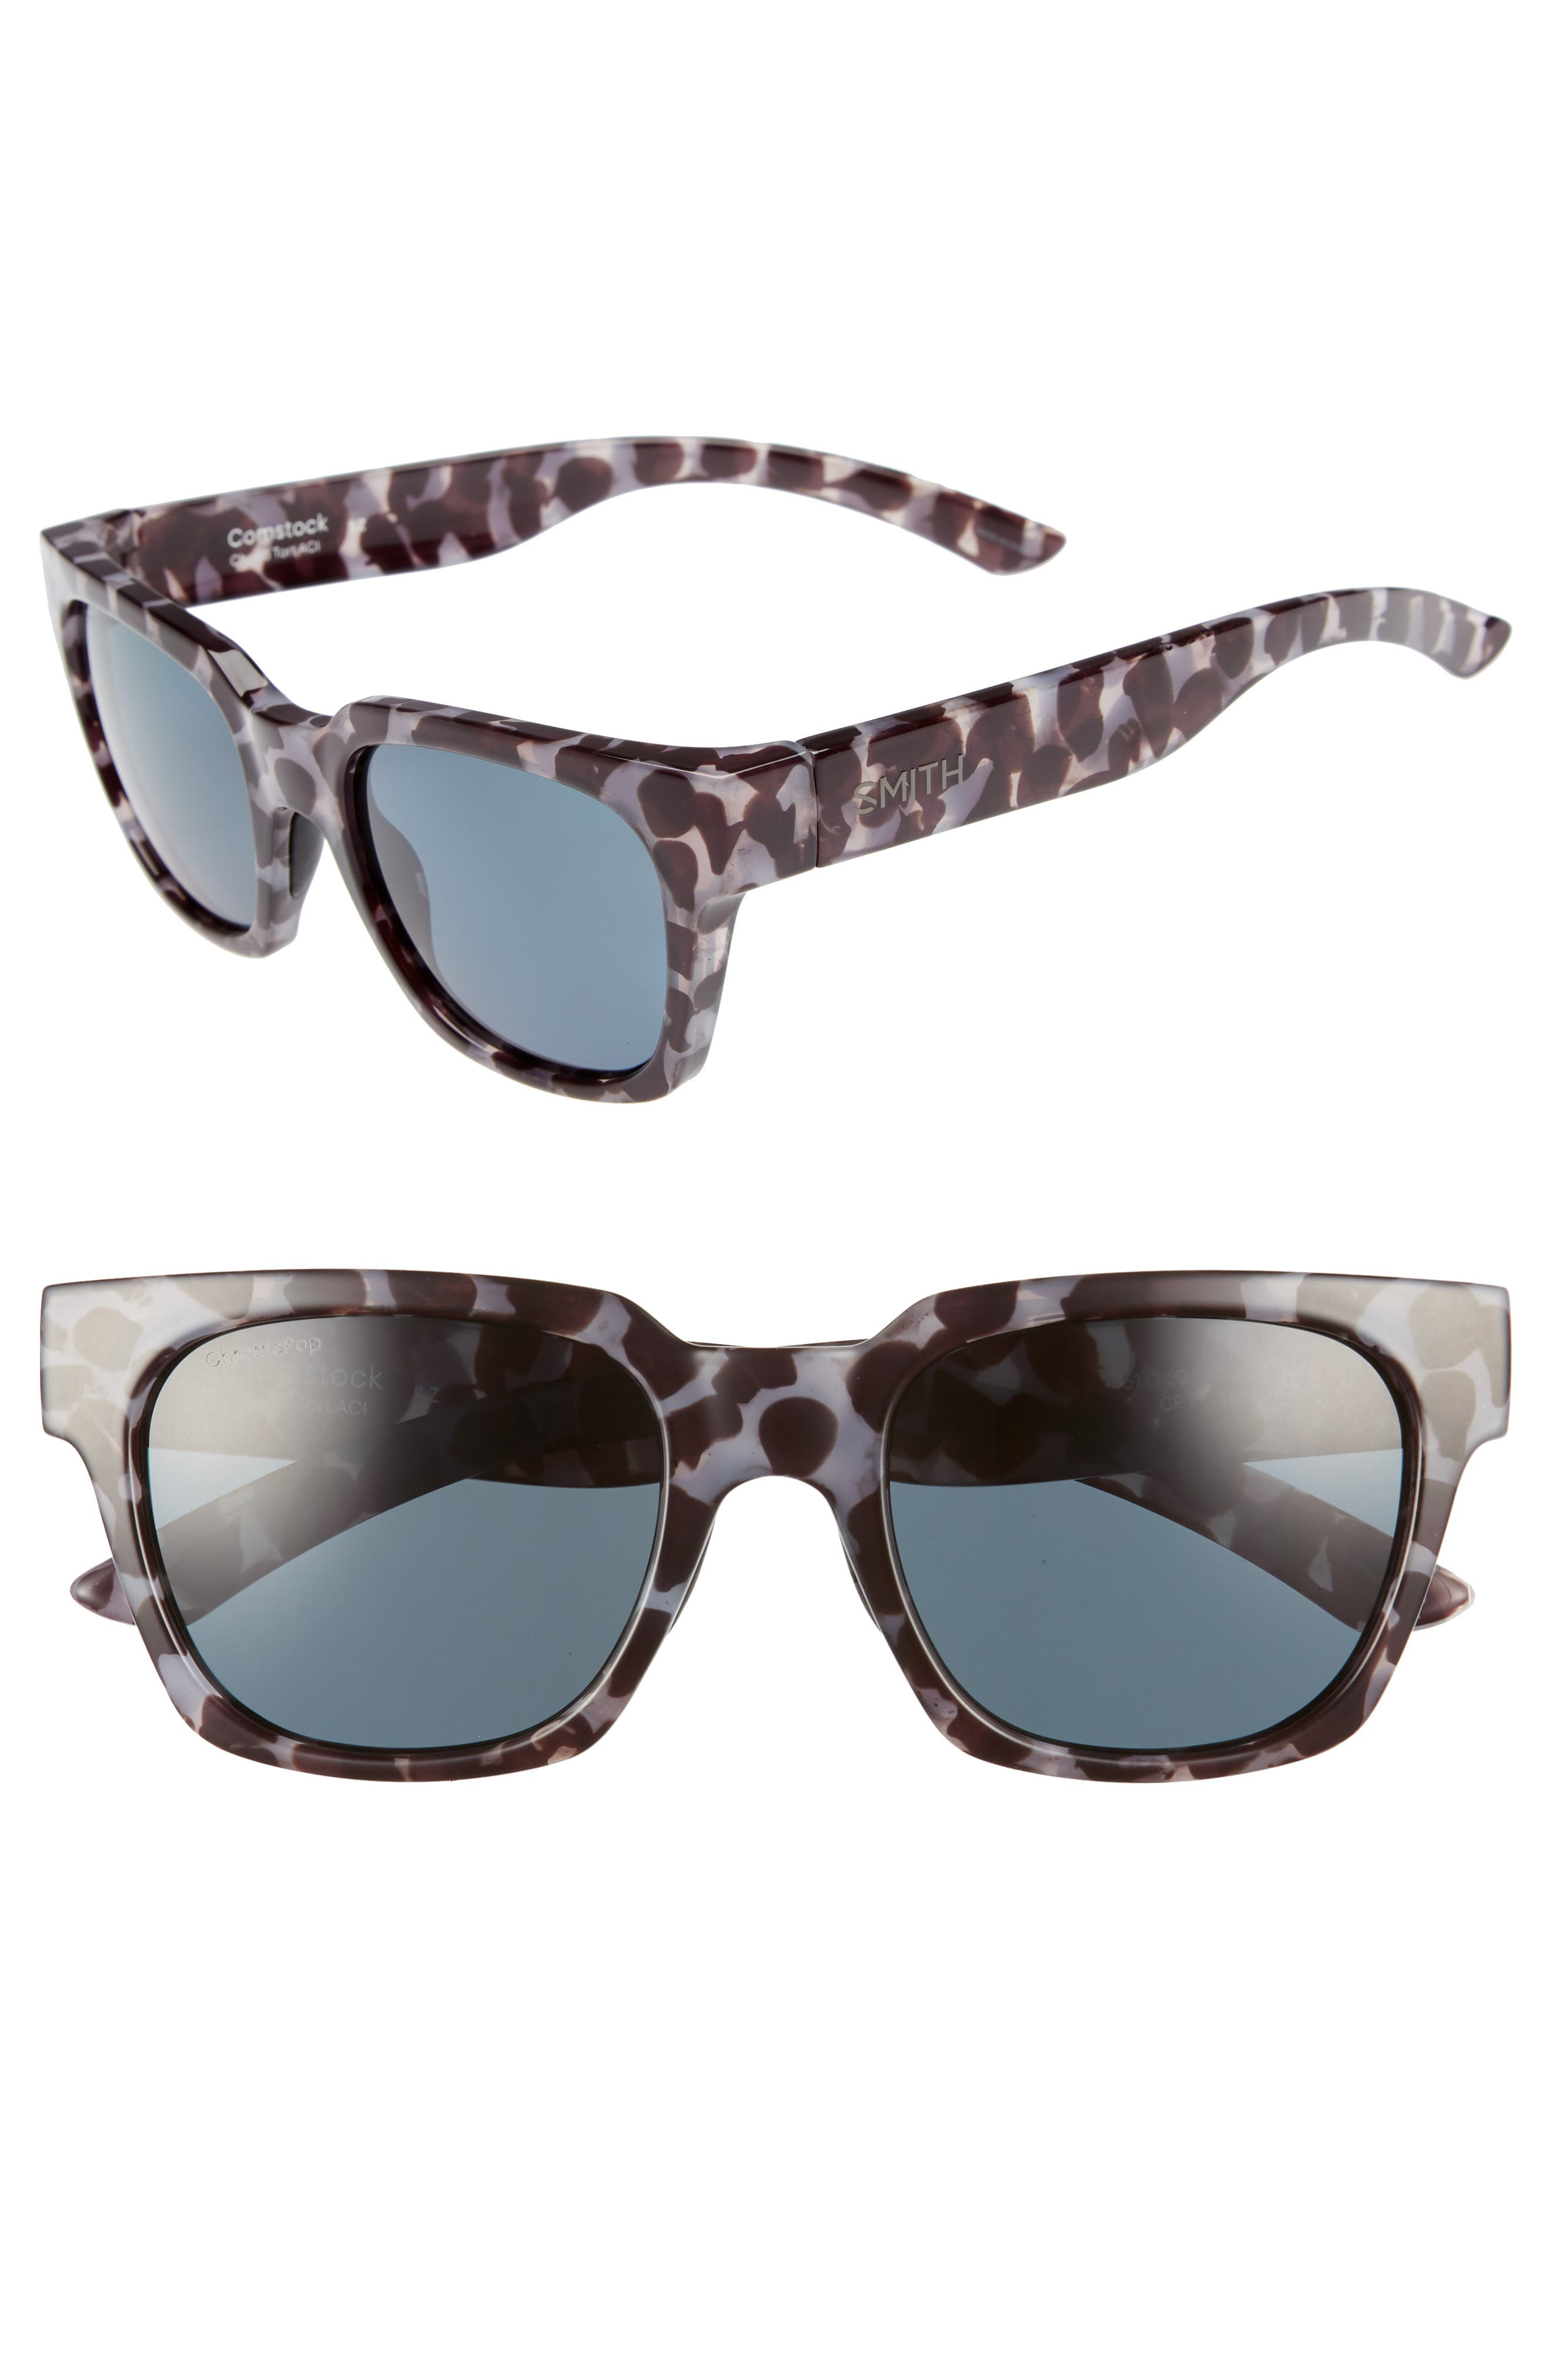 SMITH 'COMSTOCK' 52MM RECTANGULAR SUNGLASSES - CHOCOLATE TORTOISE